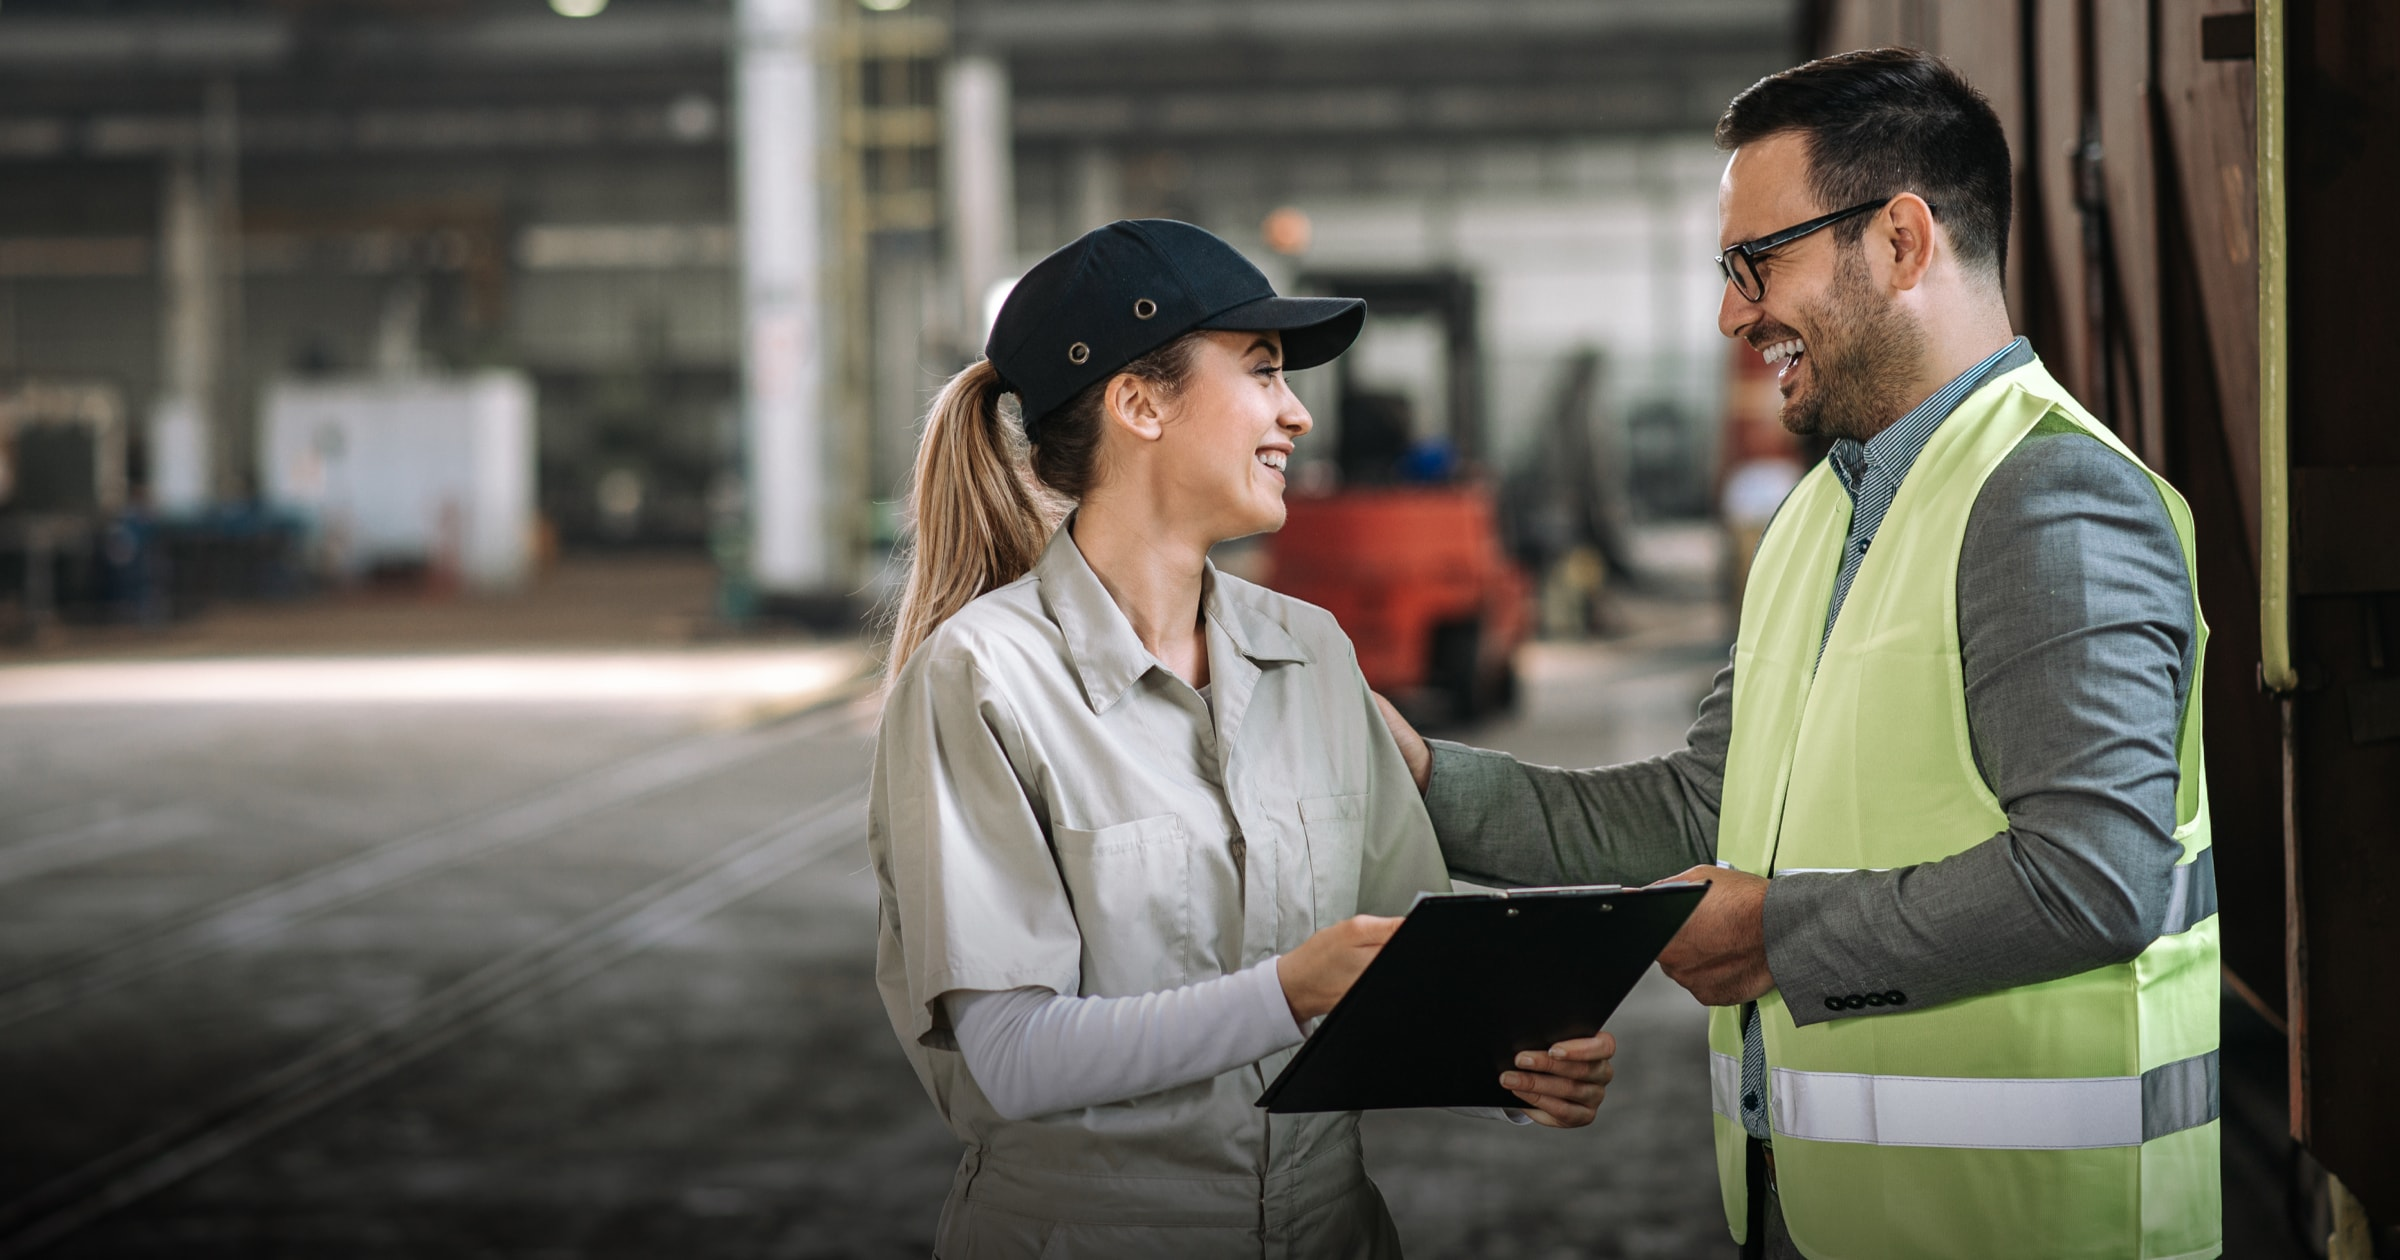 Employee engagement between manager and frontline worker in factory